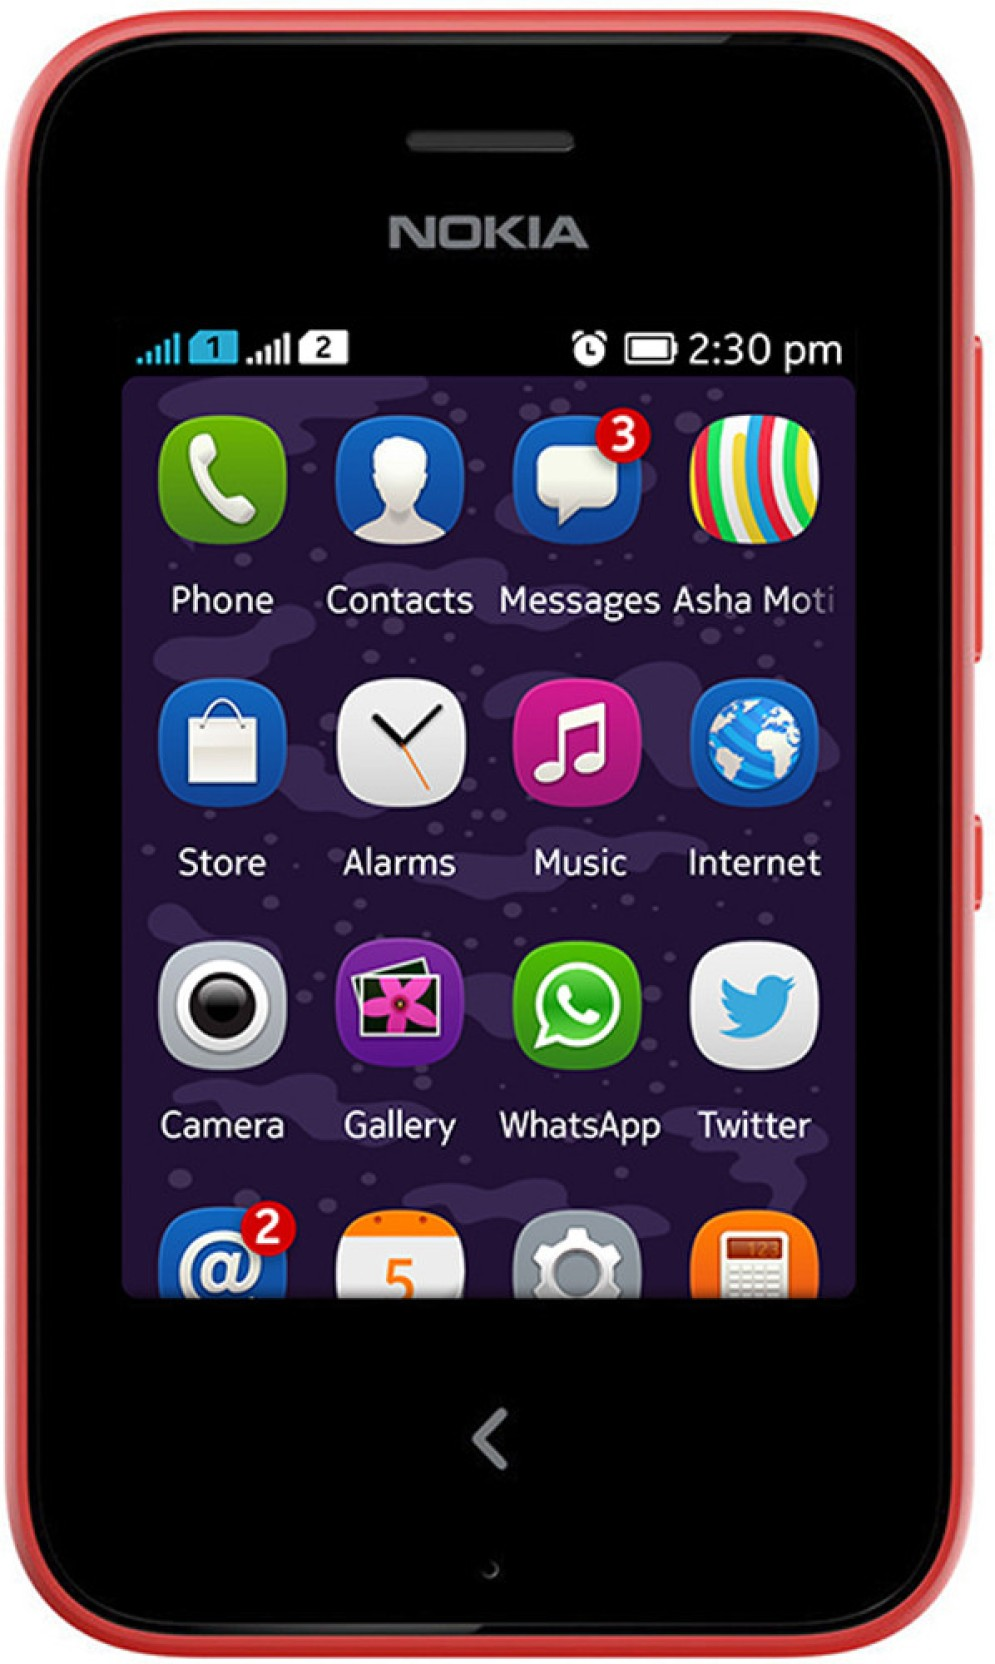 Tempat Jual Nokia Asha 310 Dual Gsm Termurah 2018 Airyrooms Silicone Xiaomi Powerbank 10000mah Ter Oem 230 Bright Red Online At Best Price Only On Compare